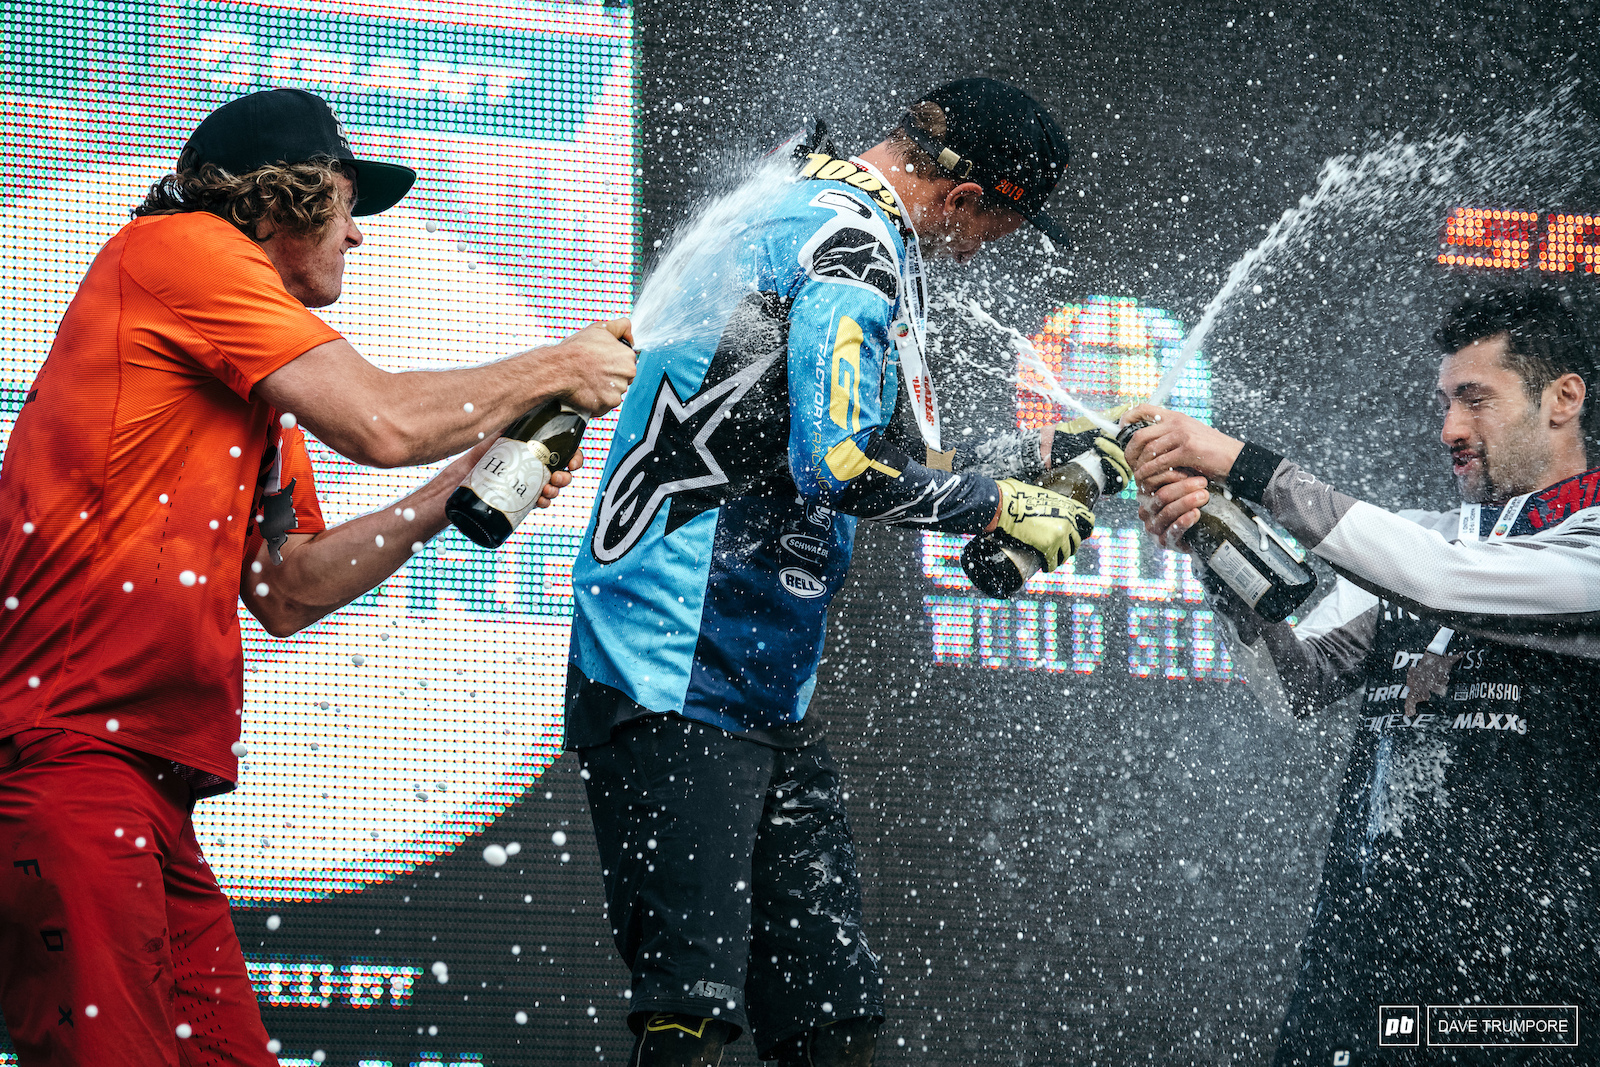 The top three men to start of the 2019 Enduro World Series.